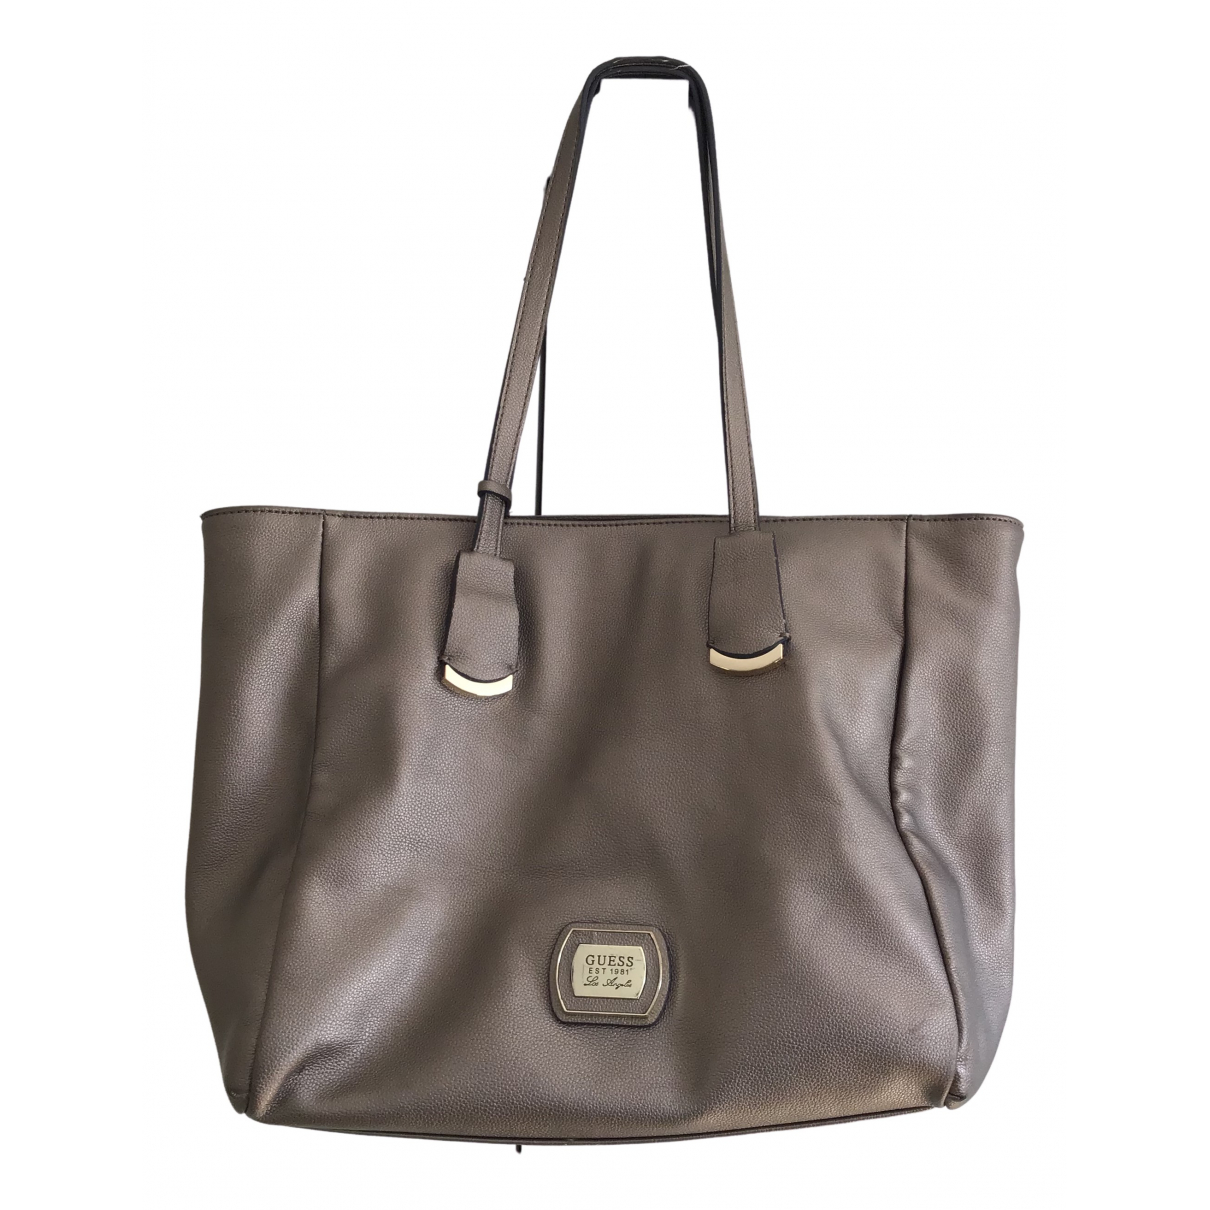 Guess \N Gold Leather handbag for Women \N